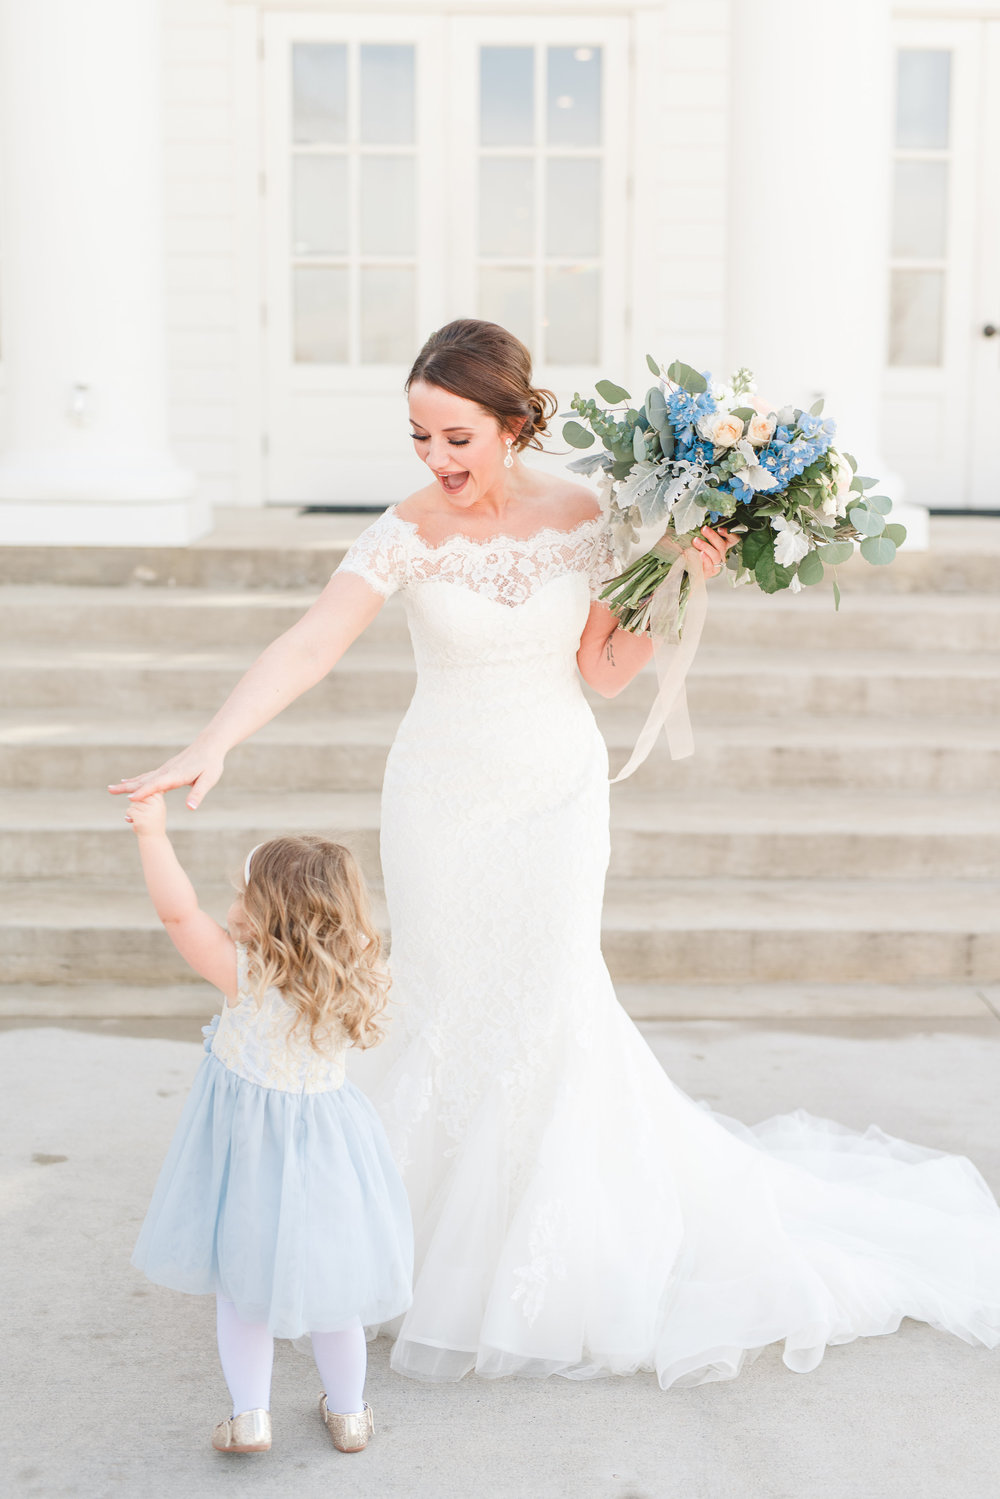 Flower Girl Dress Inspiration | Rose Gold and Dusty Blue Winter Wedding in Dallas, TX